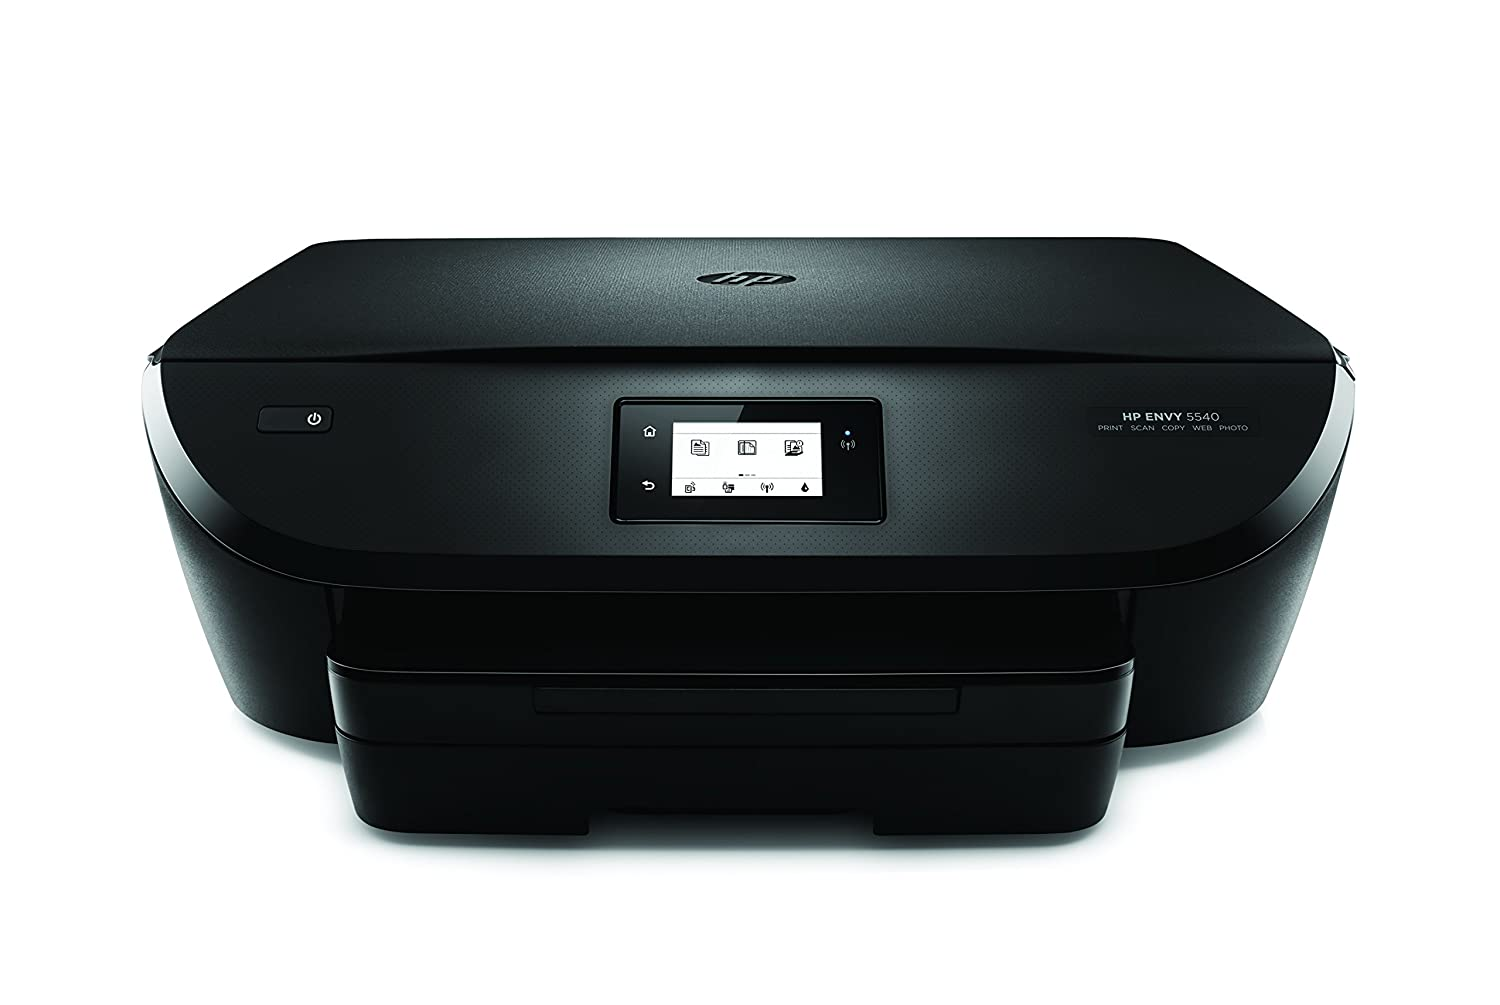 Hp Envy 5540 All In One Inkjet Printer Instant Ink Ready